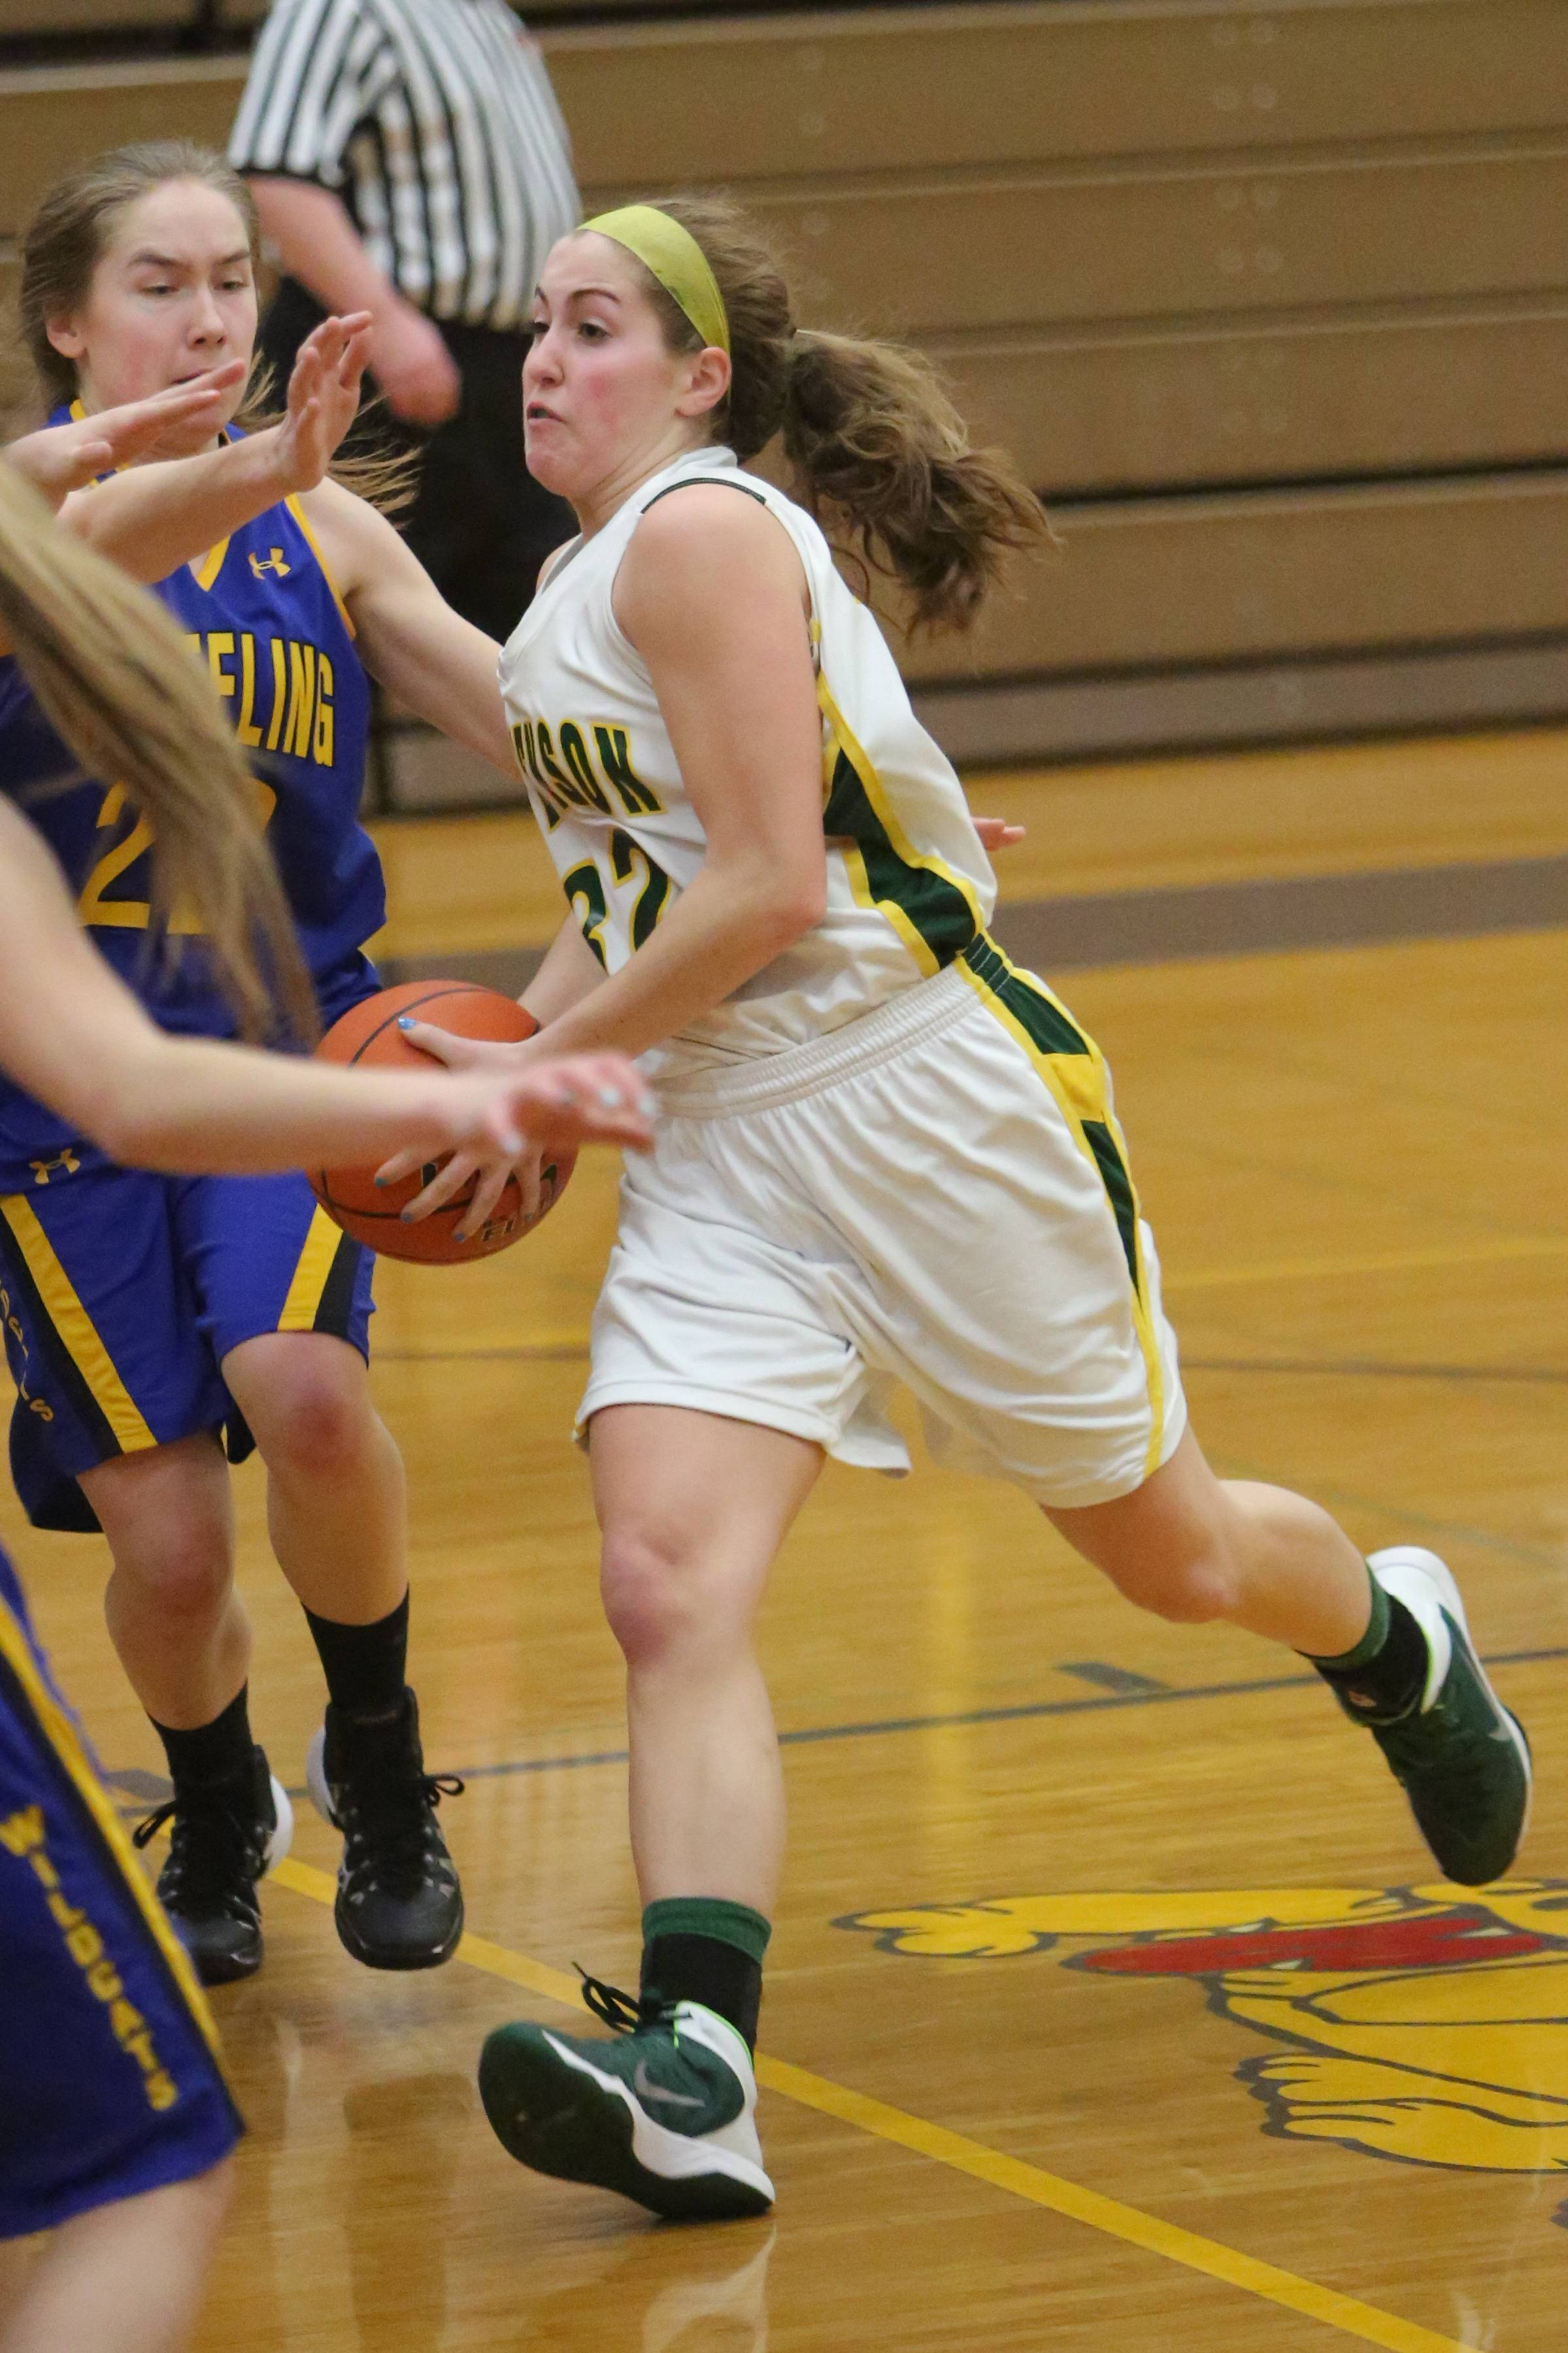 Images from the Stevenson vs. Wheeling girls basketball game on Wednesday, February 19 in Waukegan.